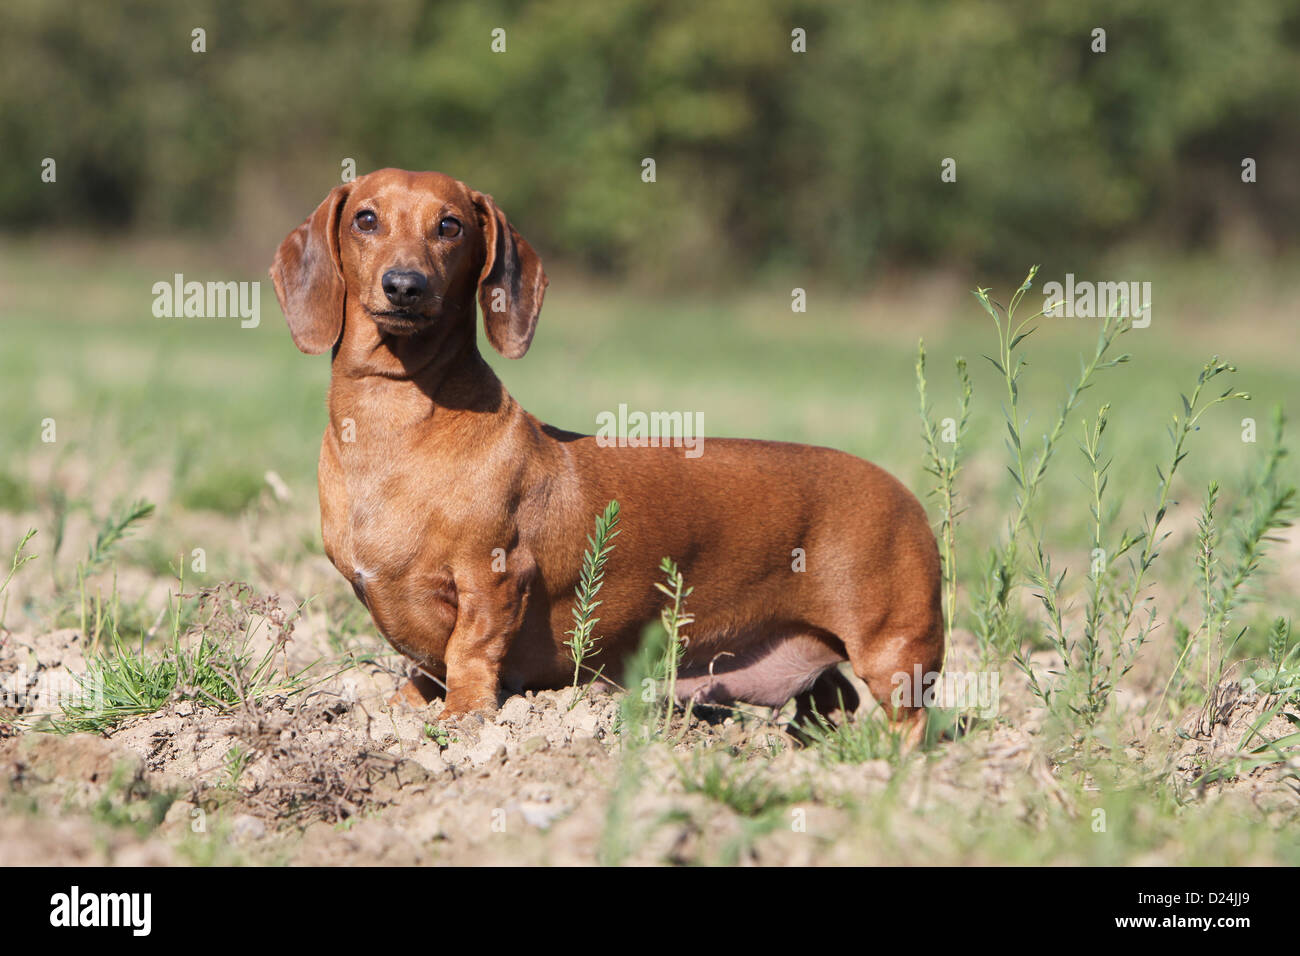 Dog Dachshund Dackel Teckel Shorthaired Adult Red